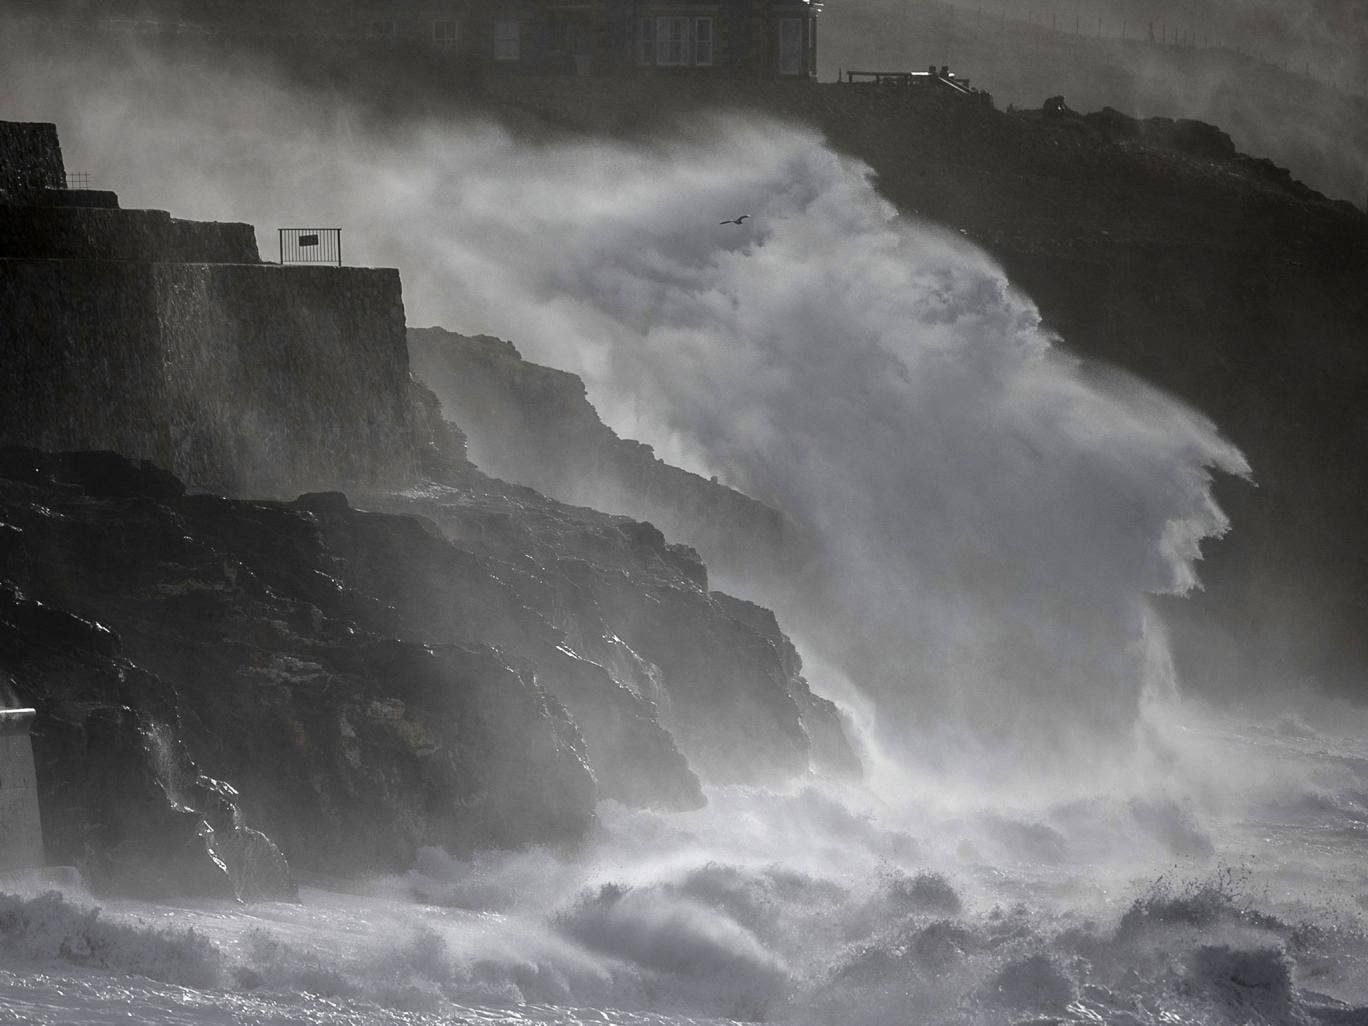 Storm waves break in February at Porthleven in Cornwall, England. The UK is bracing itself for more storms